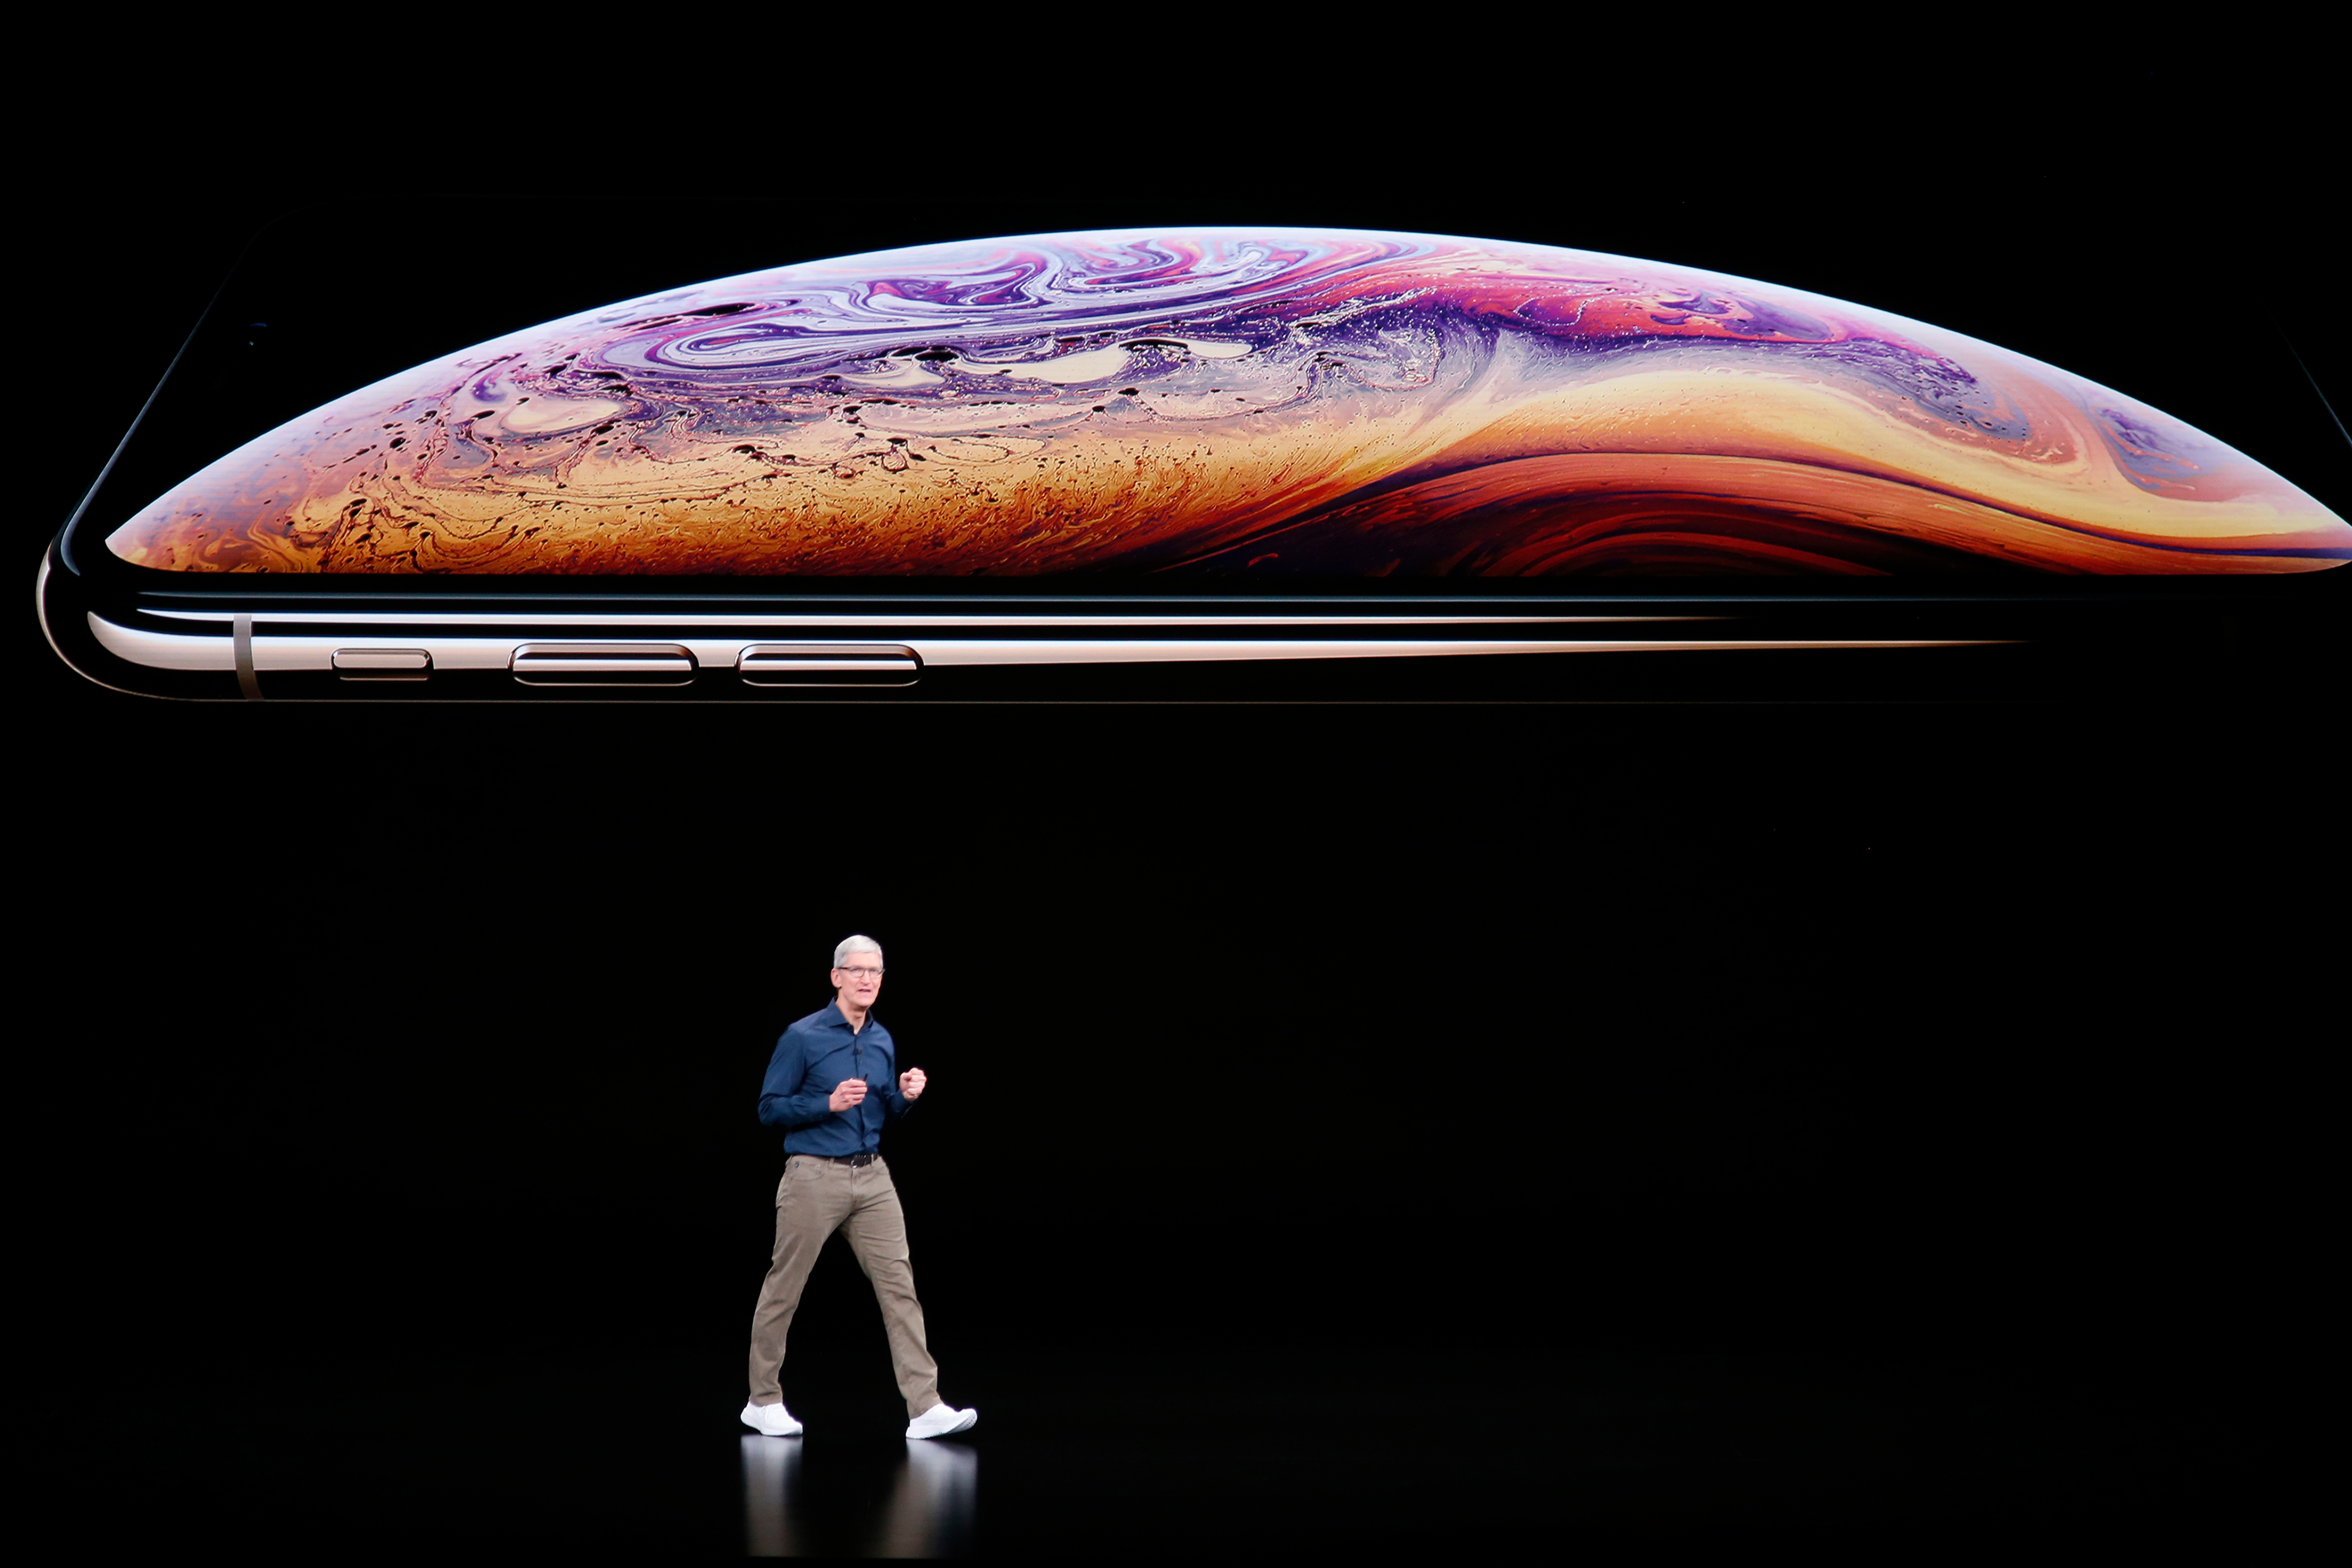 CUPERTINO, CA - SEPTEMBER 12: Tim Cook introduce Apple's new smartphone, the iPhone Xs, Wednesday, Sept. 12, 2018, at company headquarters in Cupertino, Calif. (Karl Mondon/Digital First Media/The Mercury News via Getty Images)